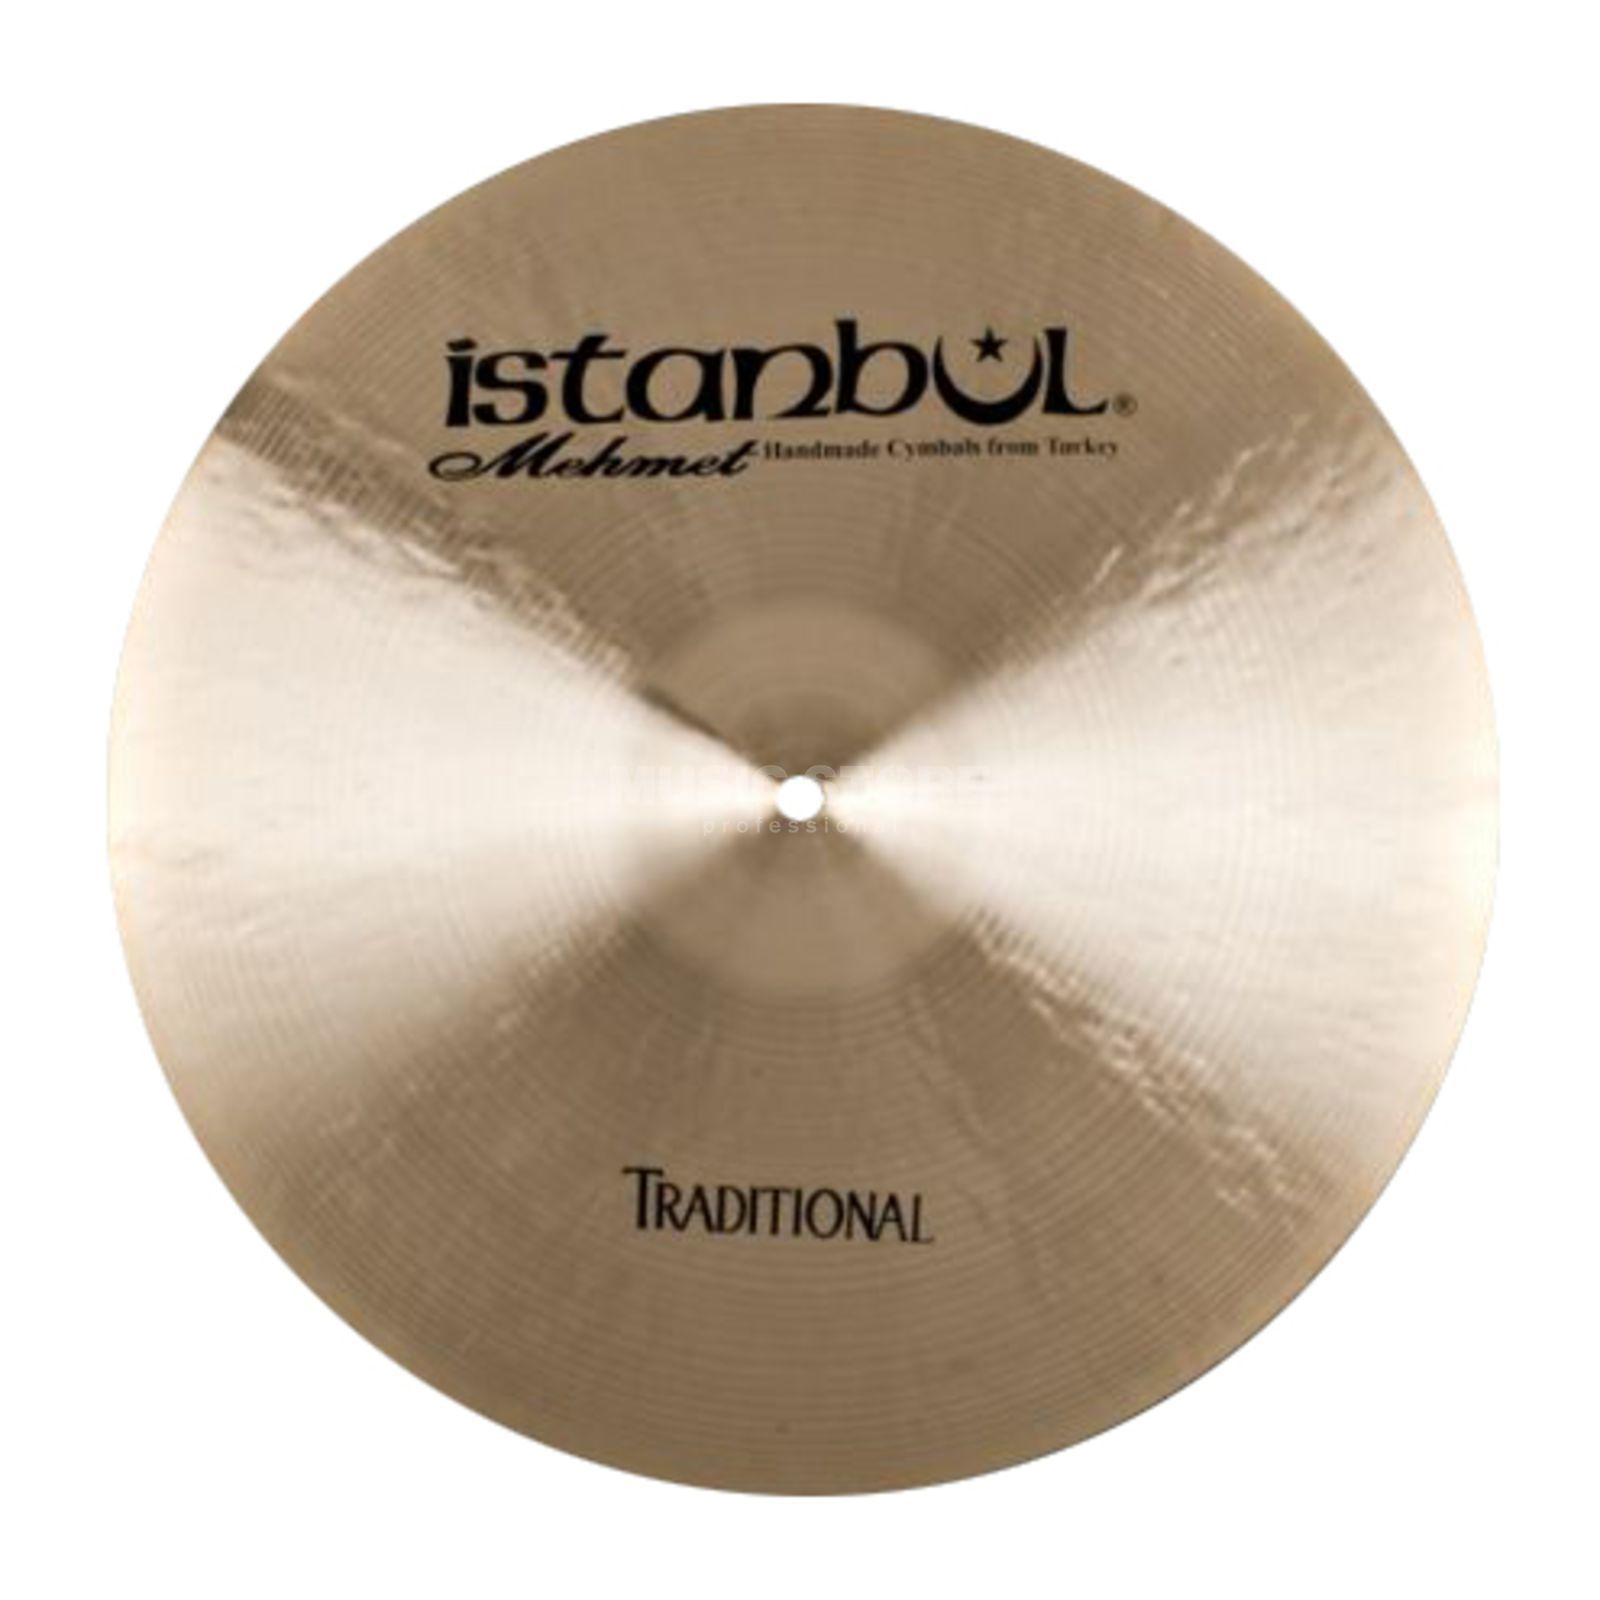 "Istanbul Traditional Dark Crash 16"", CD16 Produktbild"